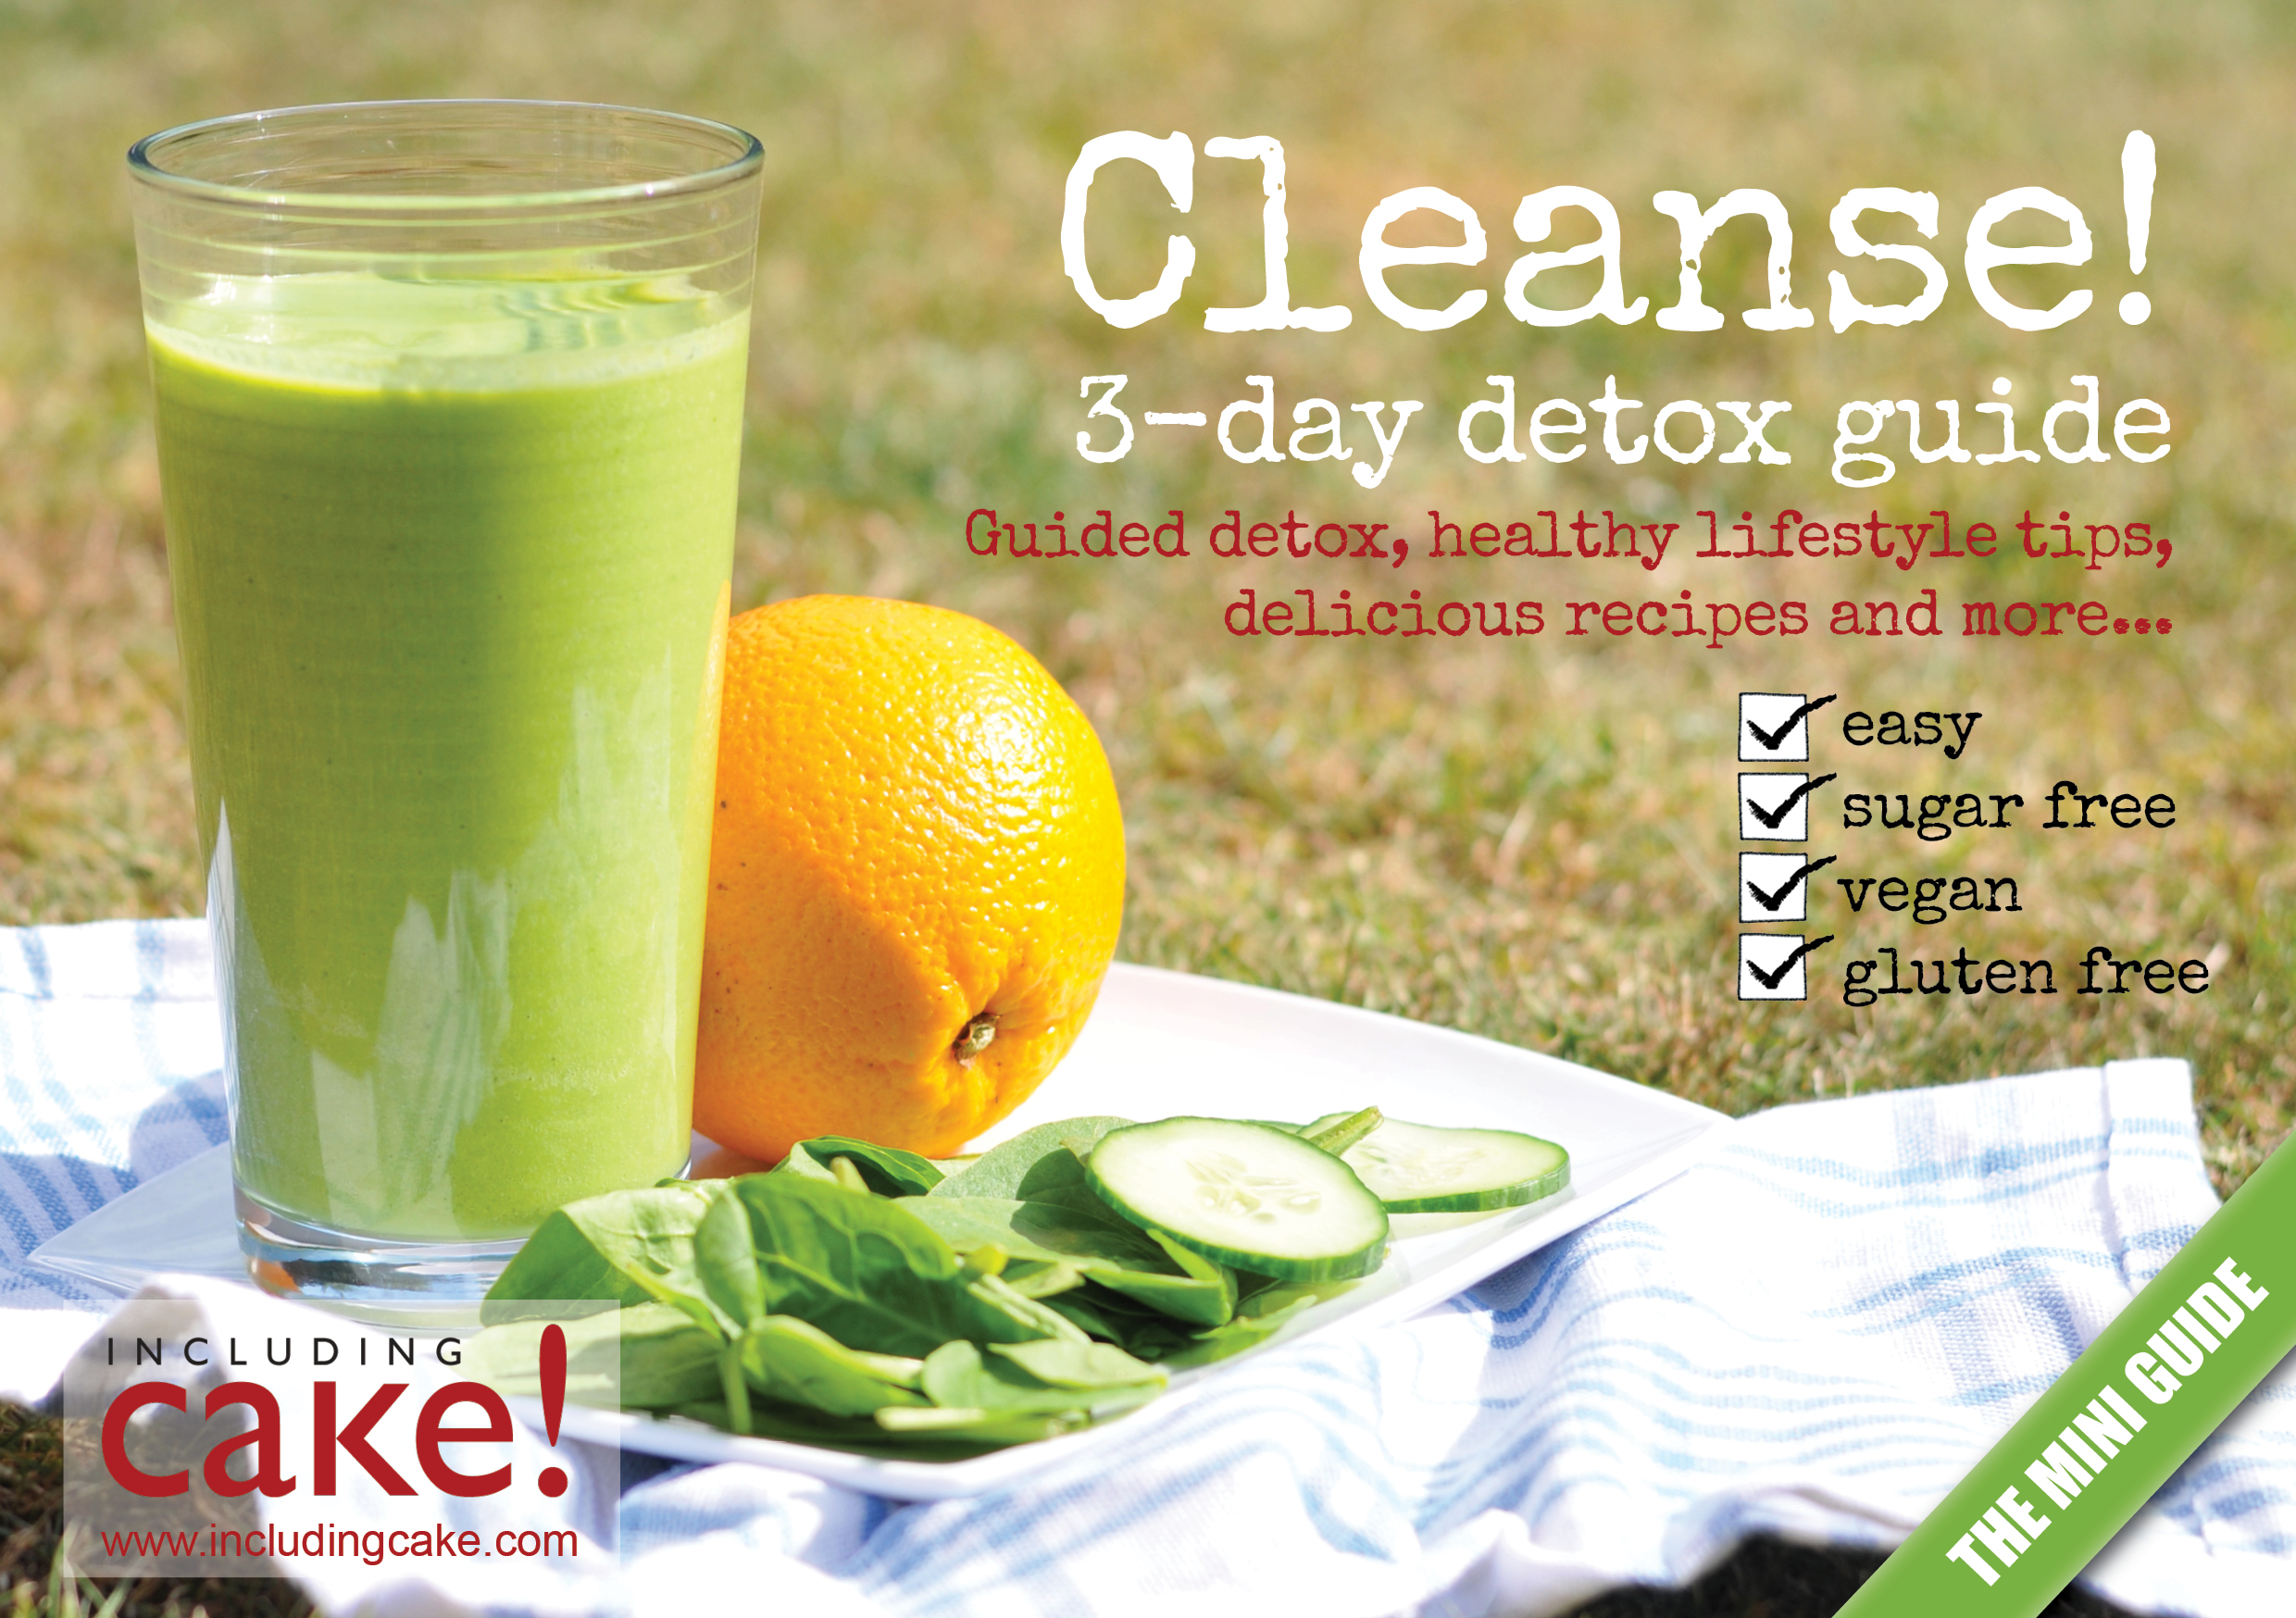 Cleanse 3-Day Detox - In the early days of my work as a health coach clients often asked for these kinds of recipes so I created a guide. (To be used as inspiration and a short term boost - these guidelines are not medically endorsed)